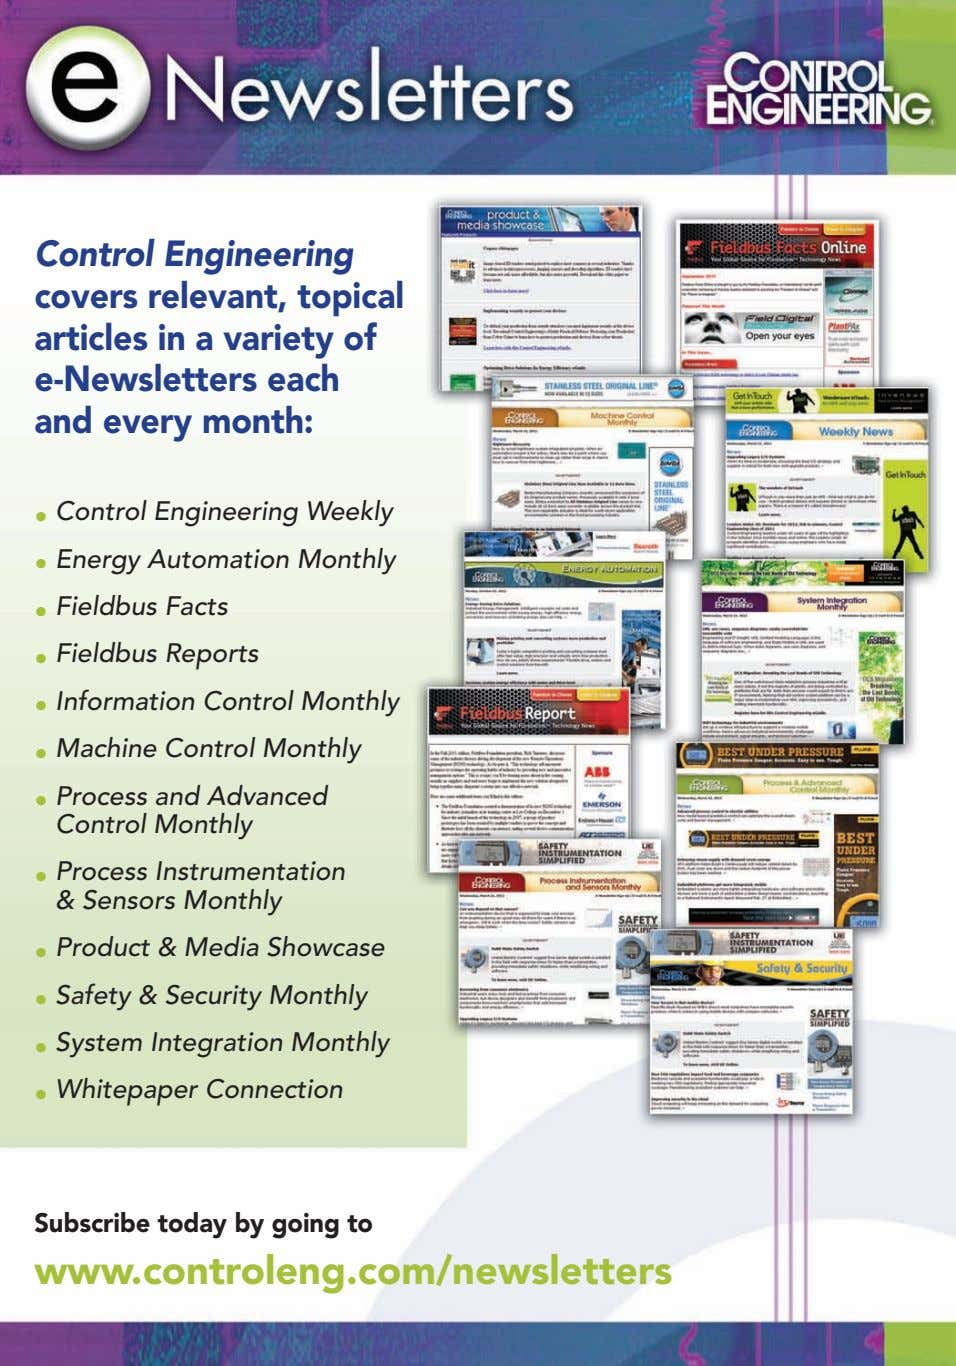 Control Engineering covers relevant, topical articles in a variety of e-Newsletters each and every month: